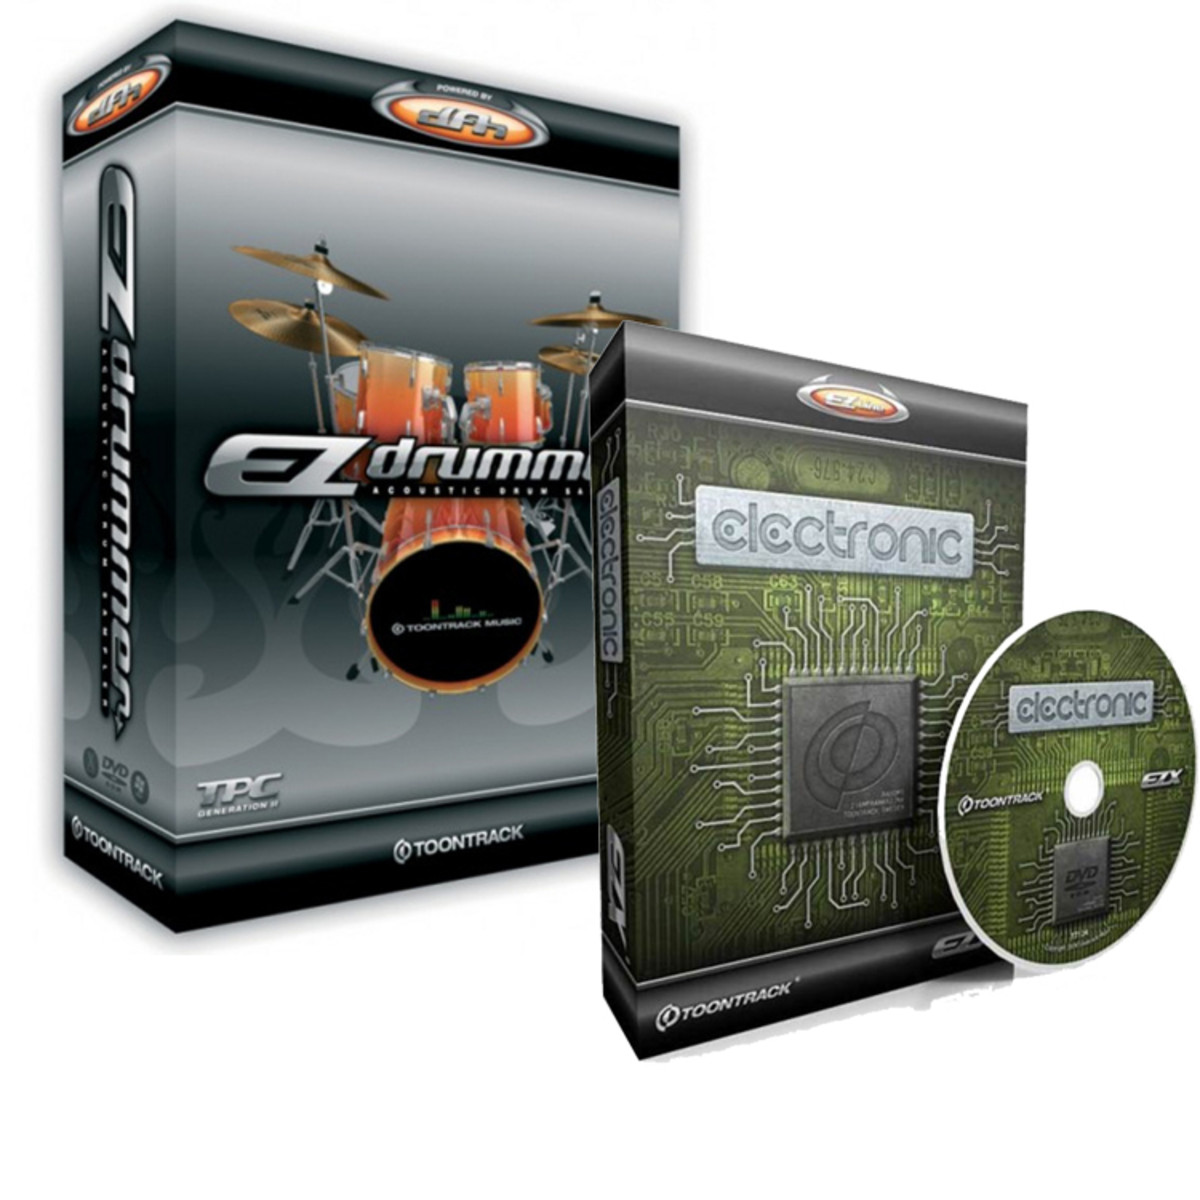 Disc Toontrack Ez Drummer Includes Ezx Electronic Free At Circuit Bent Casio Sk1 Sampling Keyboard Aliendevices Ezd 1 Ezxe 103